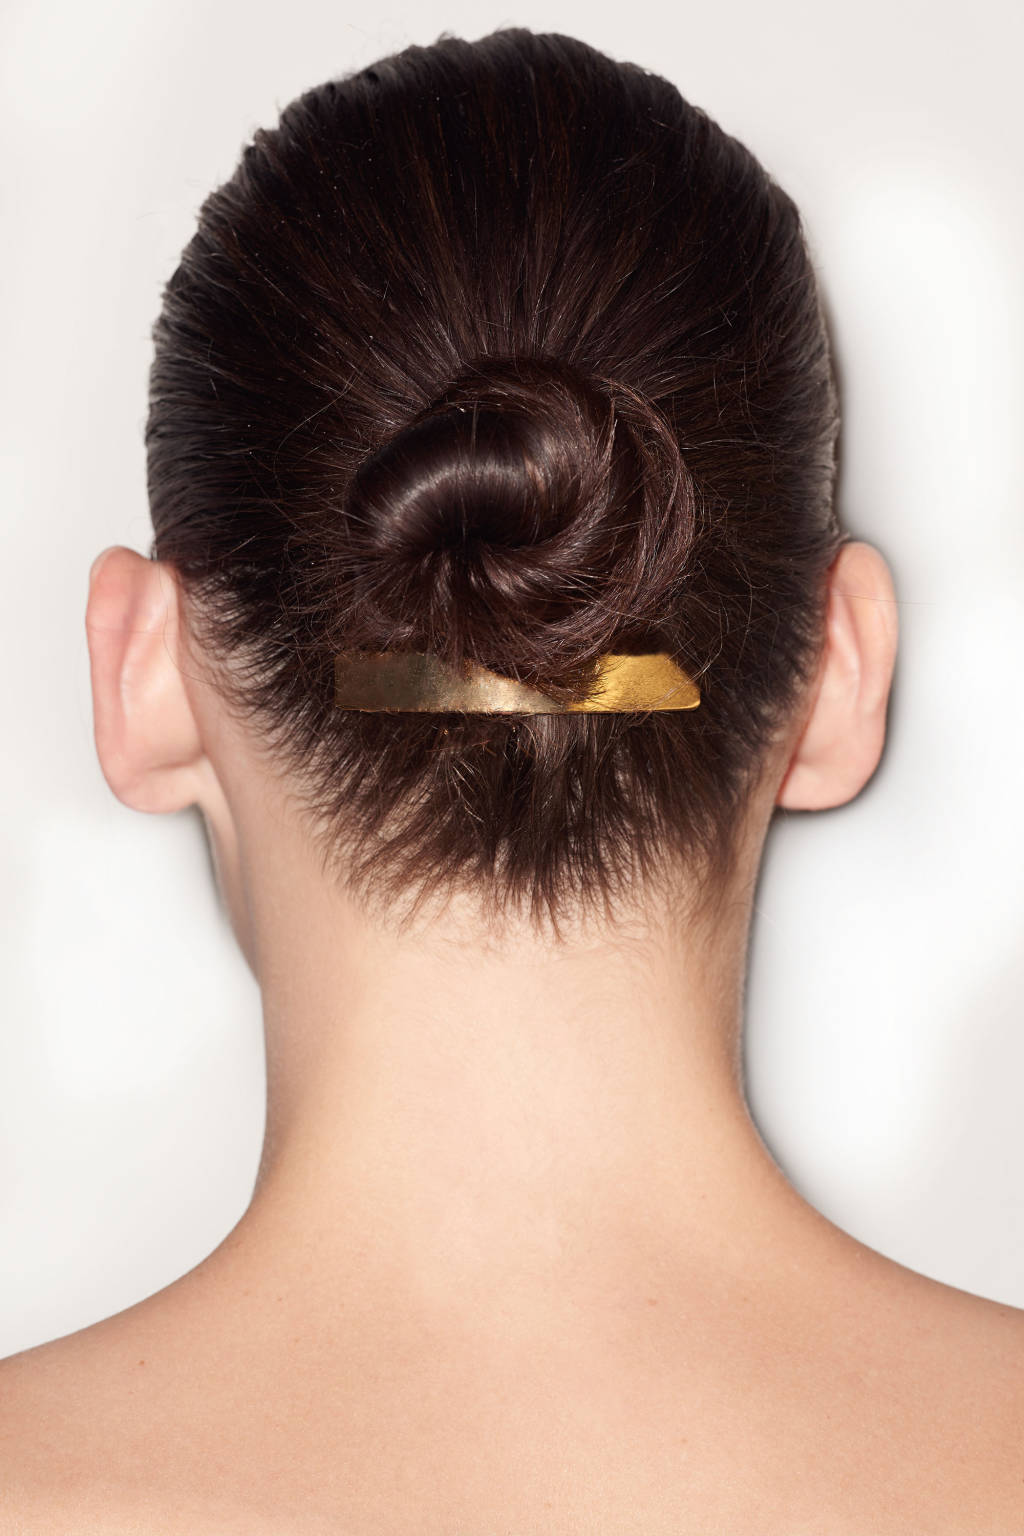 Lanvin hair accessories 2015